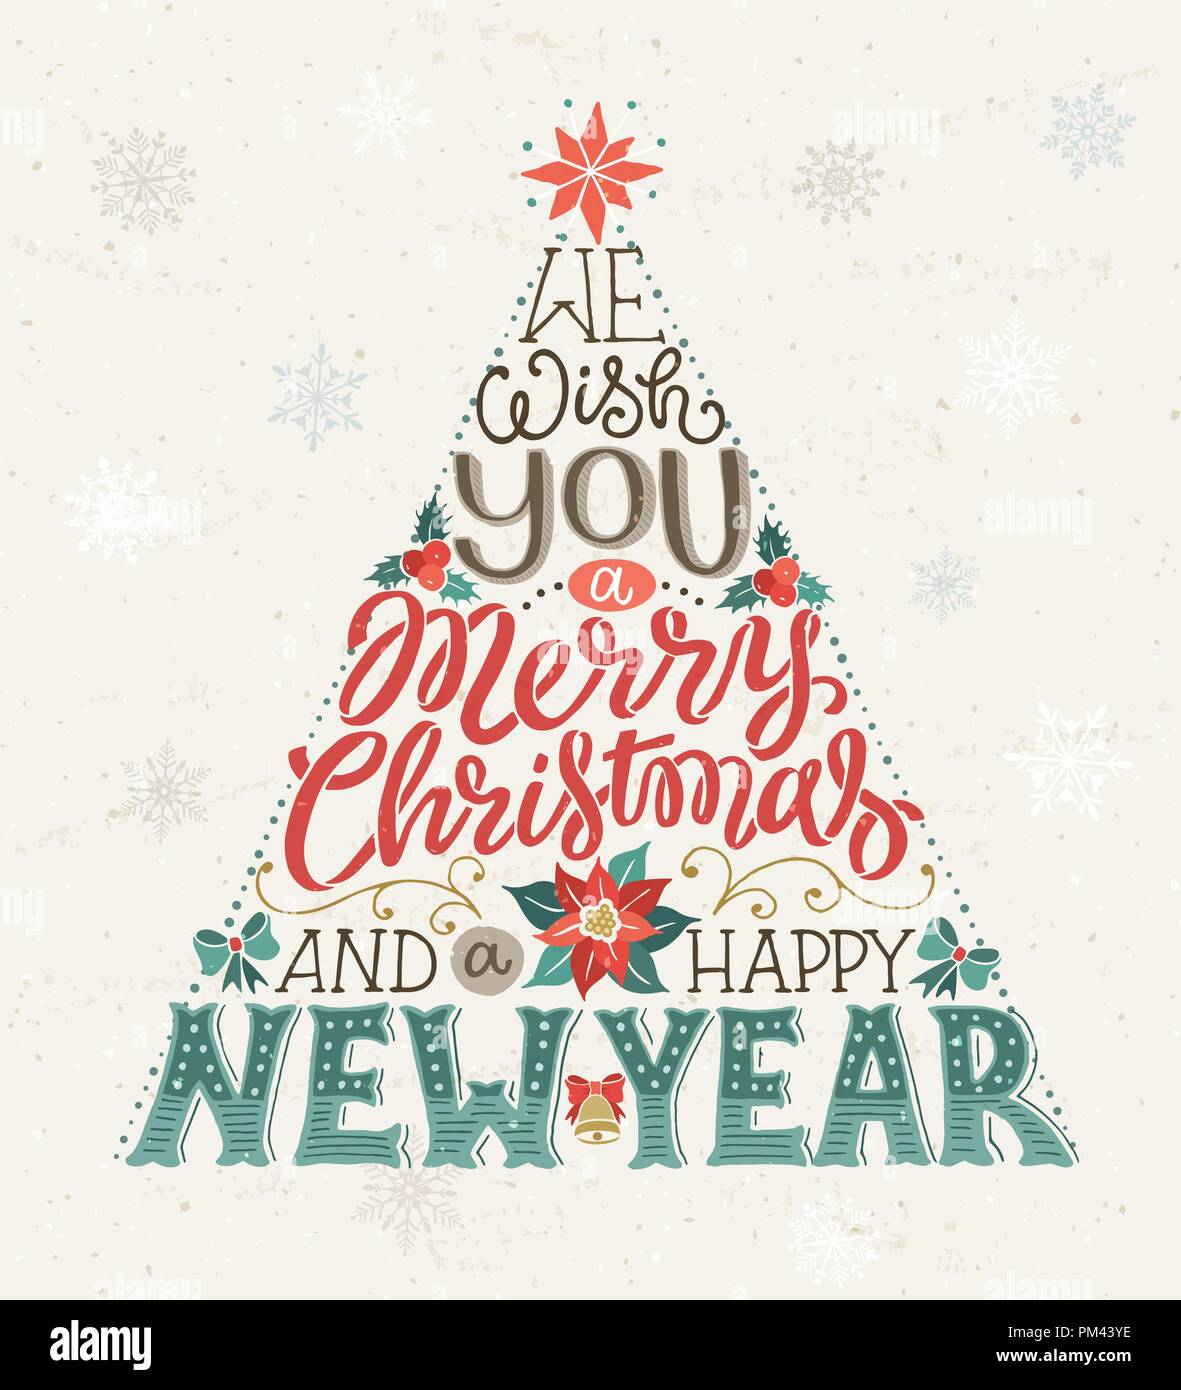 Merry Christmas And Happy New Year.Hand Drawn Christmas Tree Lettering We Wish You A Merry